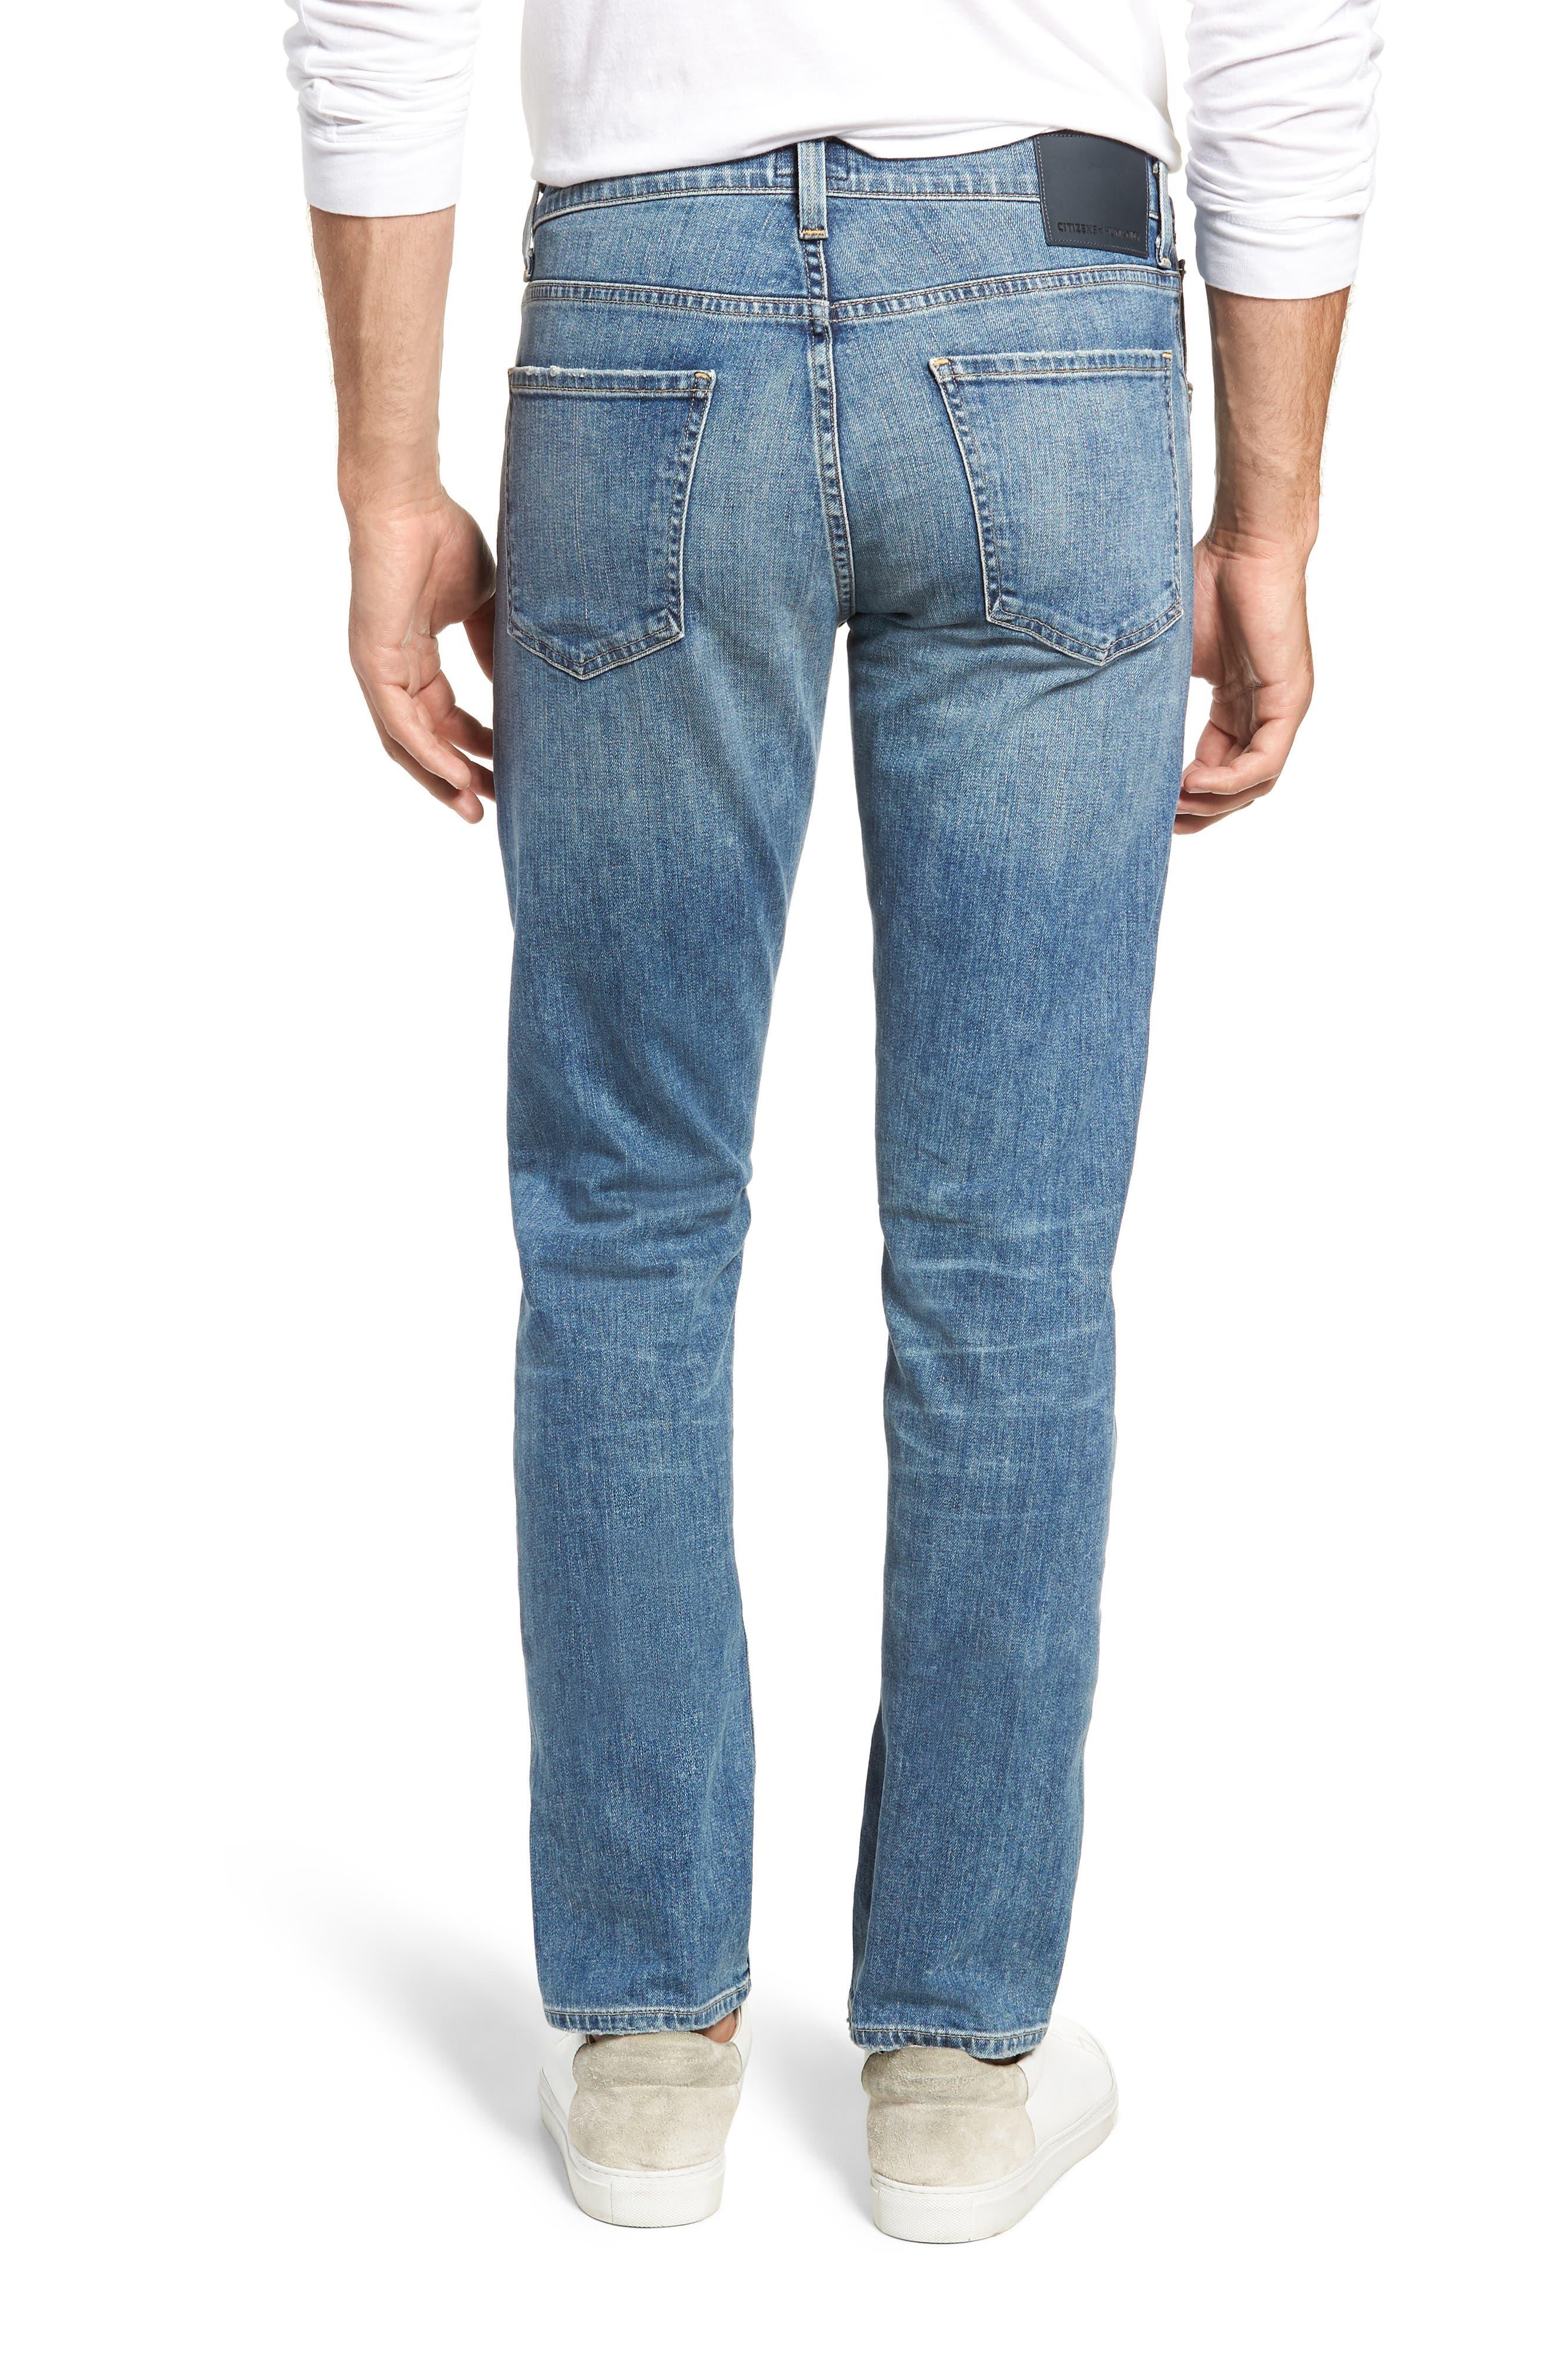 Bowery Slim Fit Jeans,                             Alternate thumbnail 2, color,                             ALAND